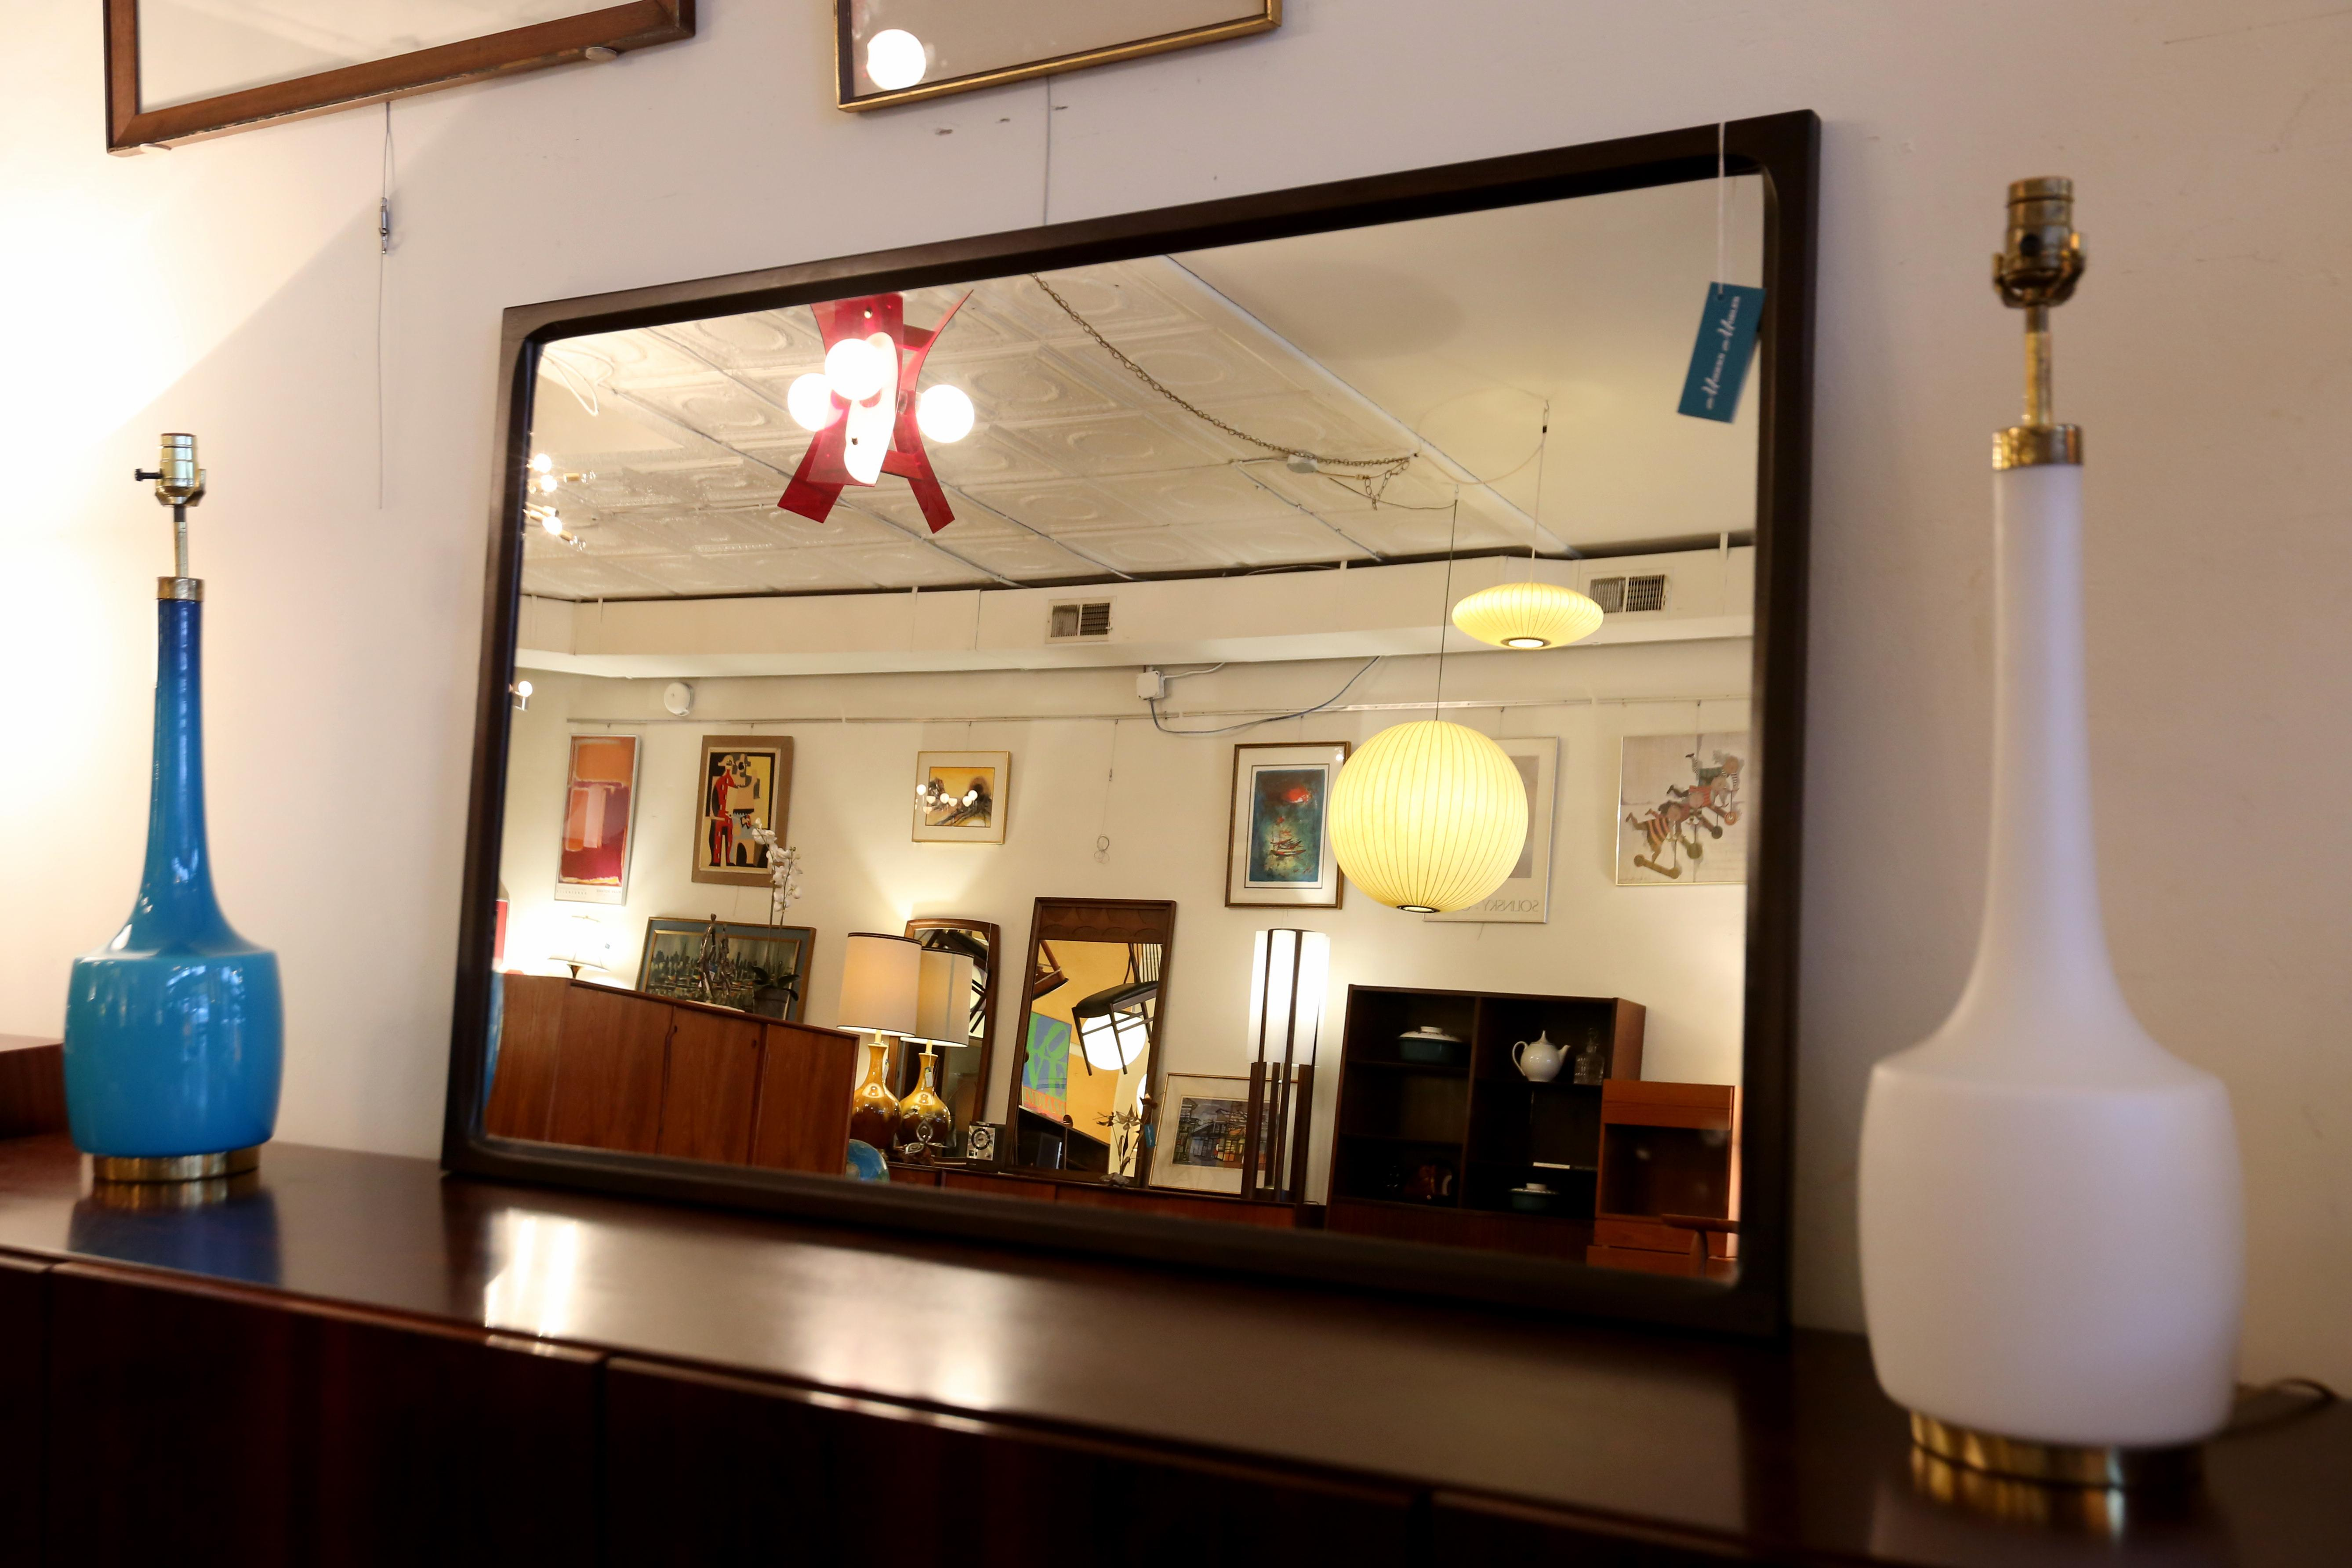 Rosewood mirror - $945, available at Modern Mobler. (Amanda Andrade-Rhoades/DC Refined)